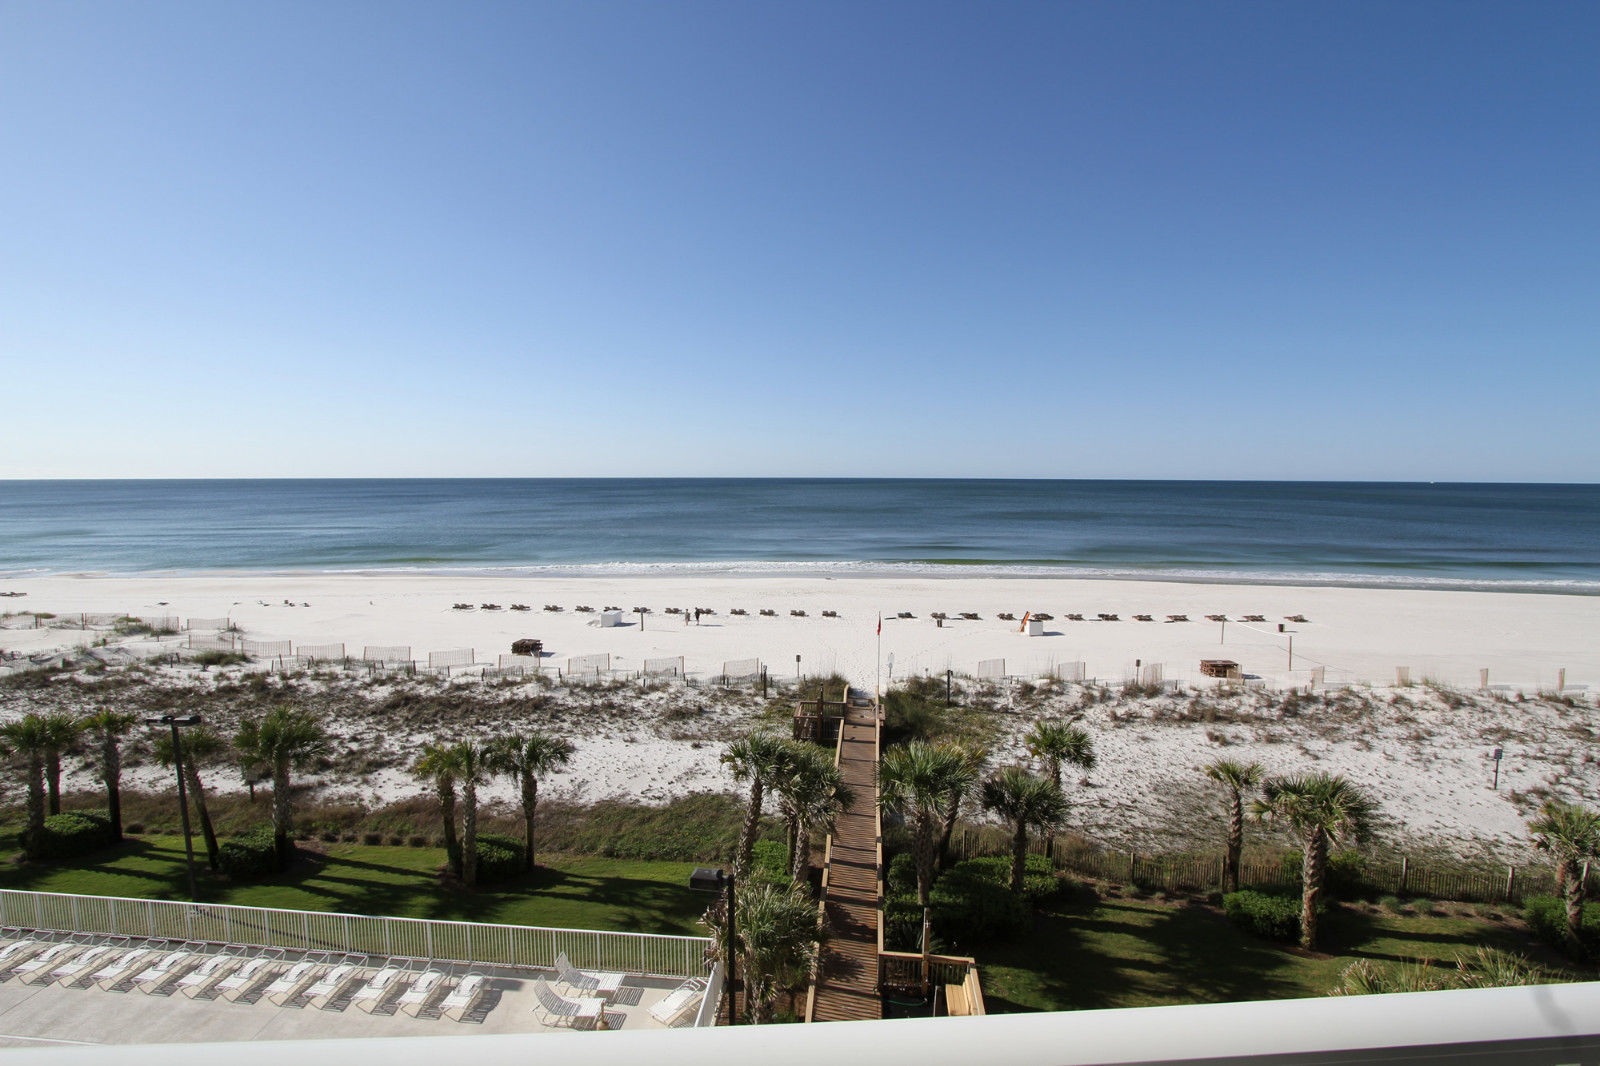 View from the balcony at our Regency Isle Condo